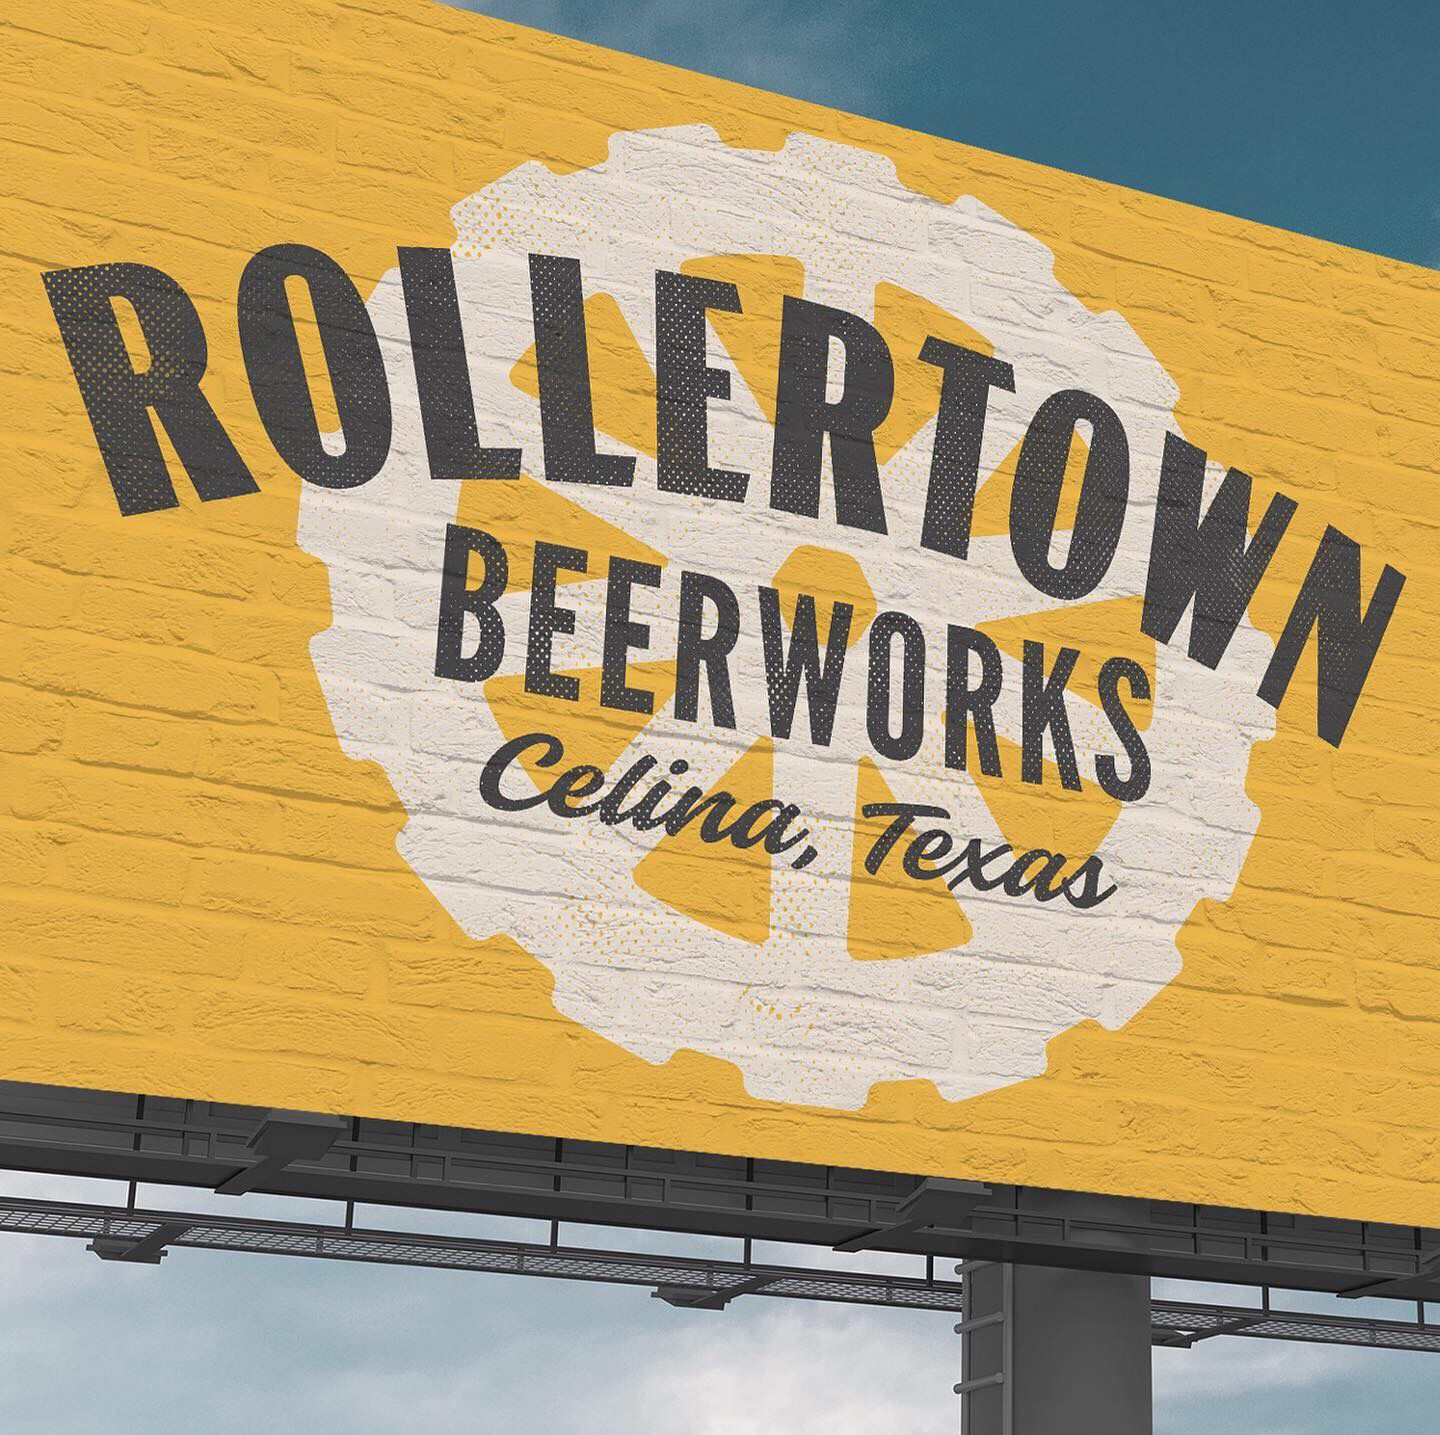 """Rollertown Beerworks will produce a variety of lagers, plus some """"crazy stuff"""" and """"tons of collaborations,"""" says brewer Tommy Miller."""